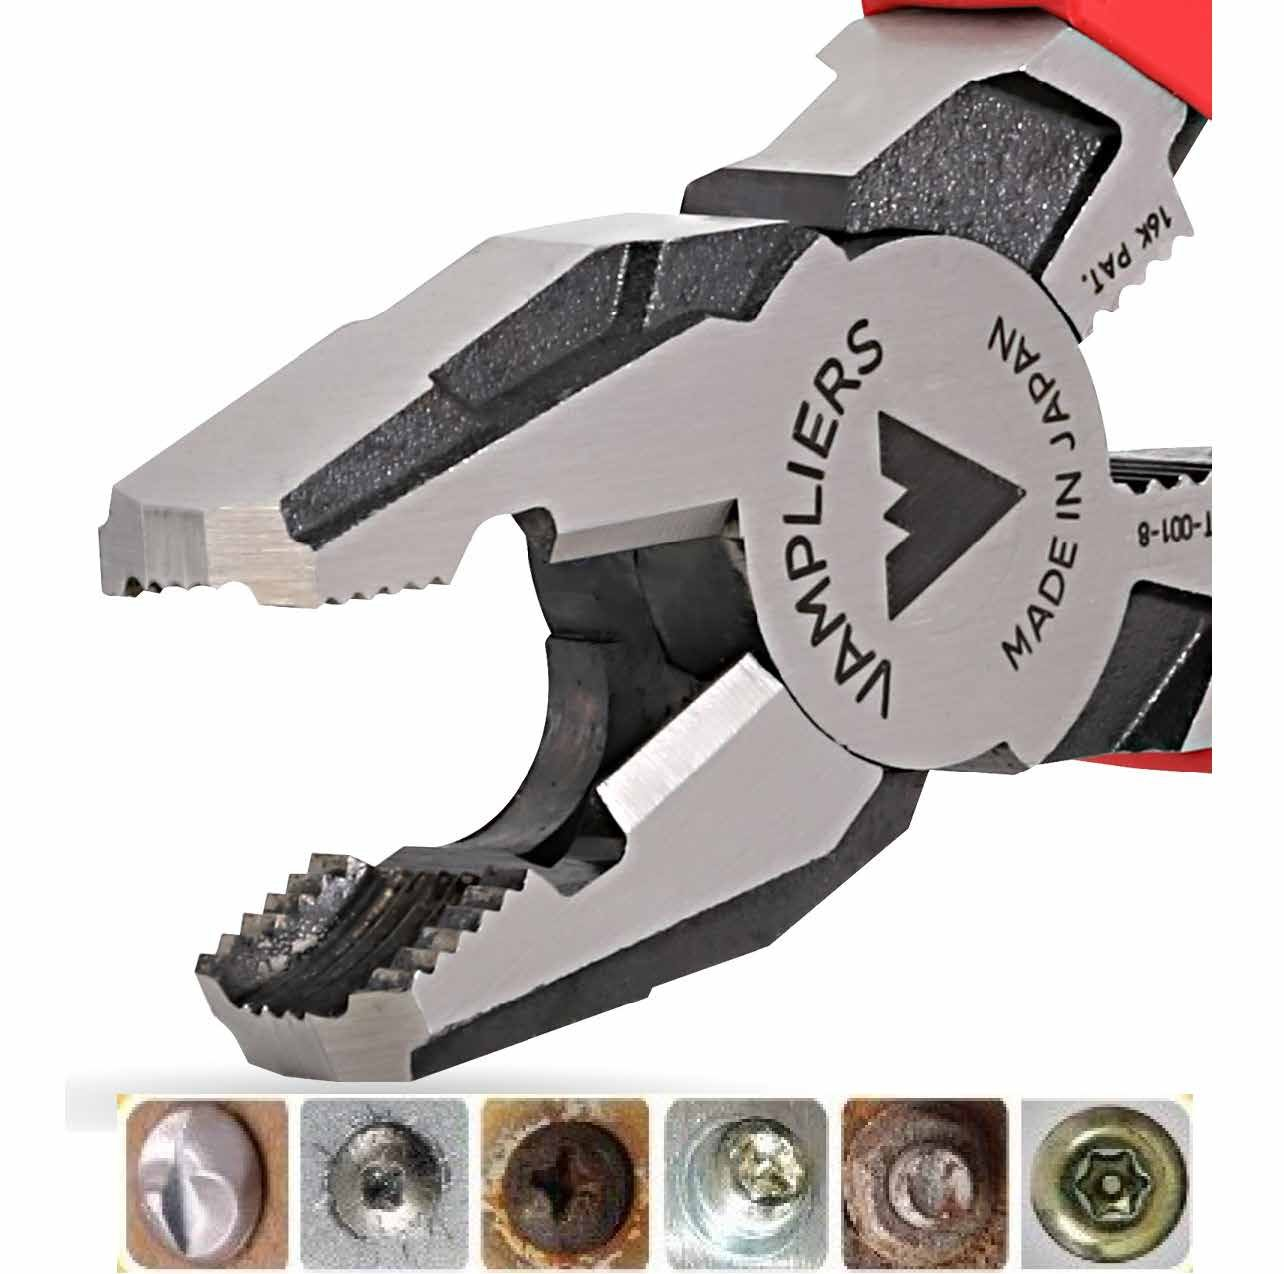 Corroded or Rusted Screws//Nuts//Bolts Worlds Best Pliers VAMPLIERS Specialty Screw Extractions Pliers 8 Pro Linemans Screw Extraction Pliers Extract Stripped Stuck Security